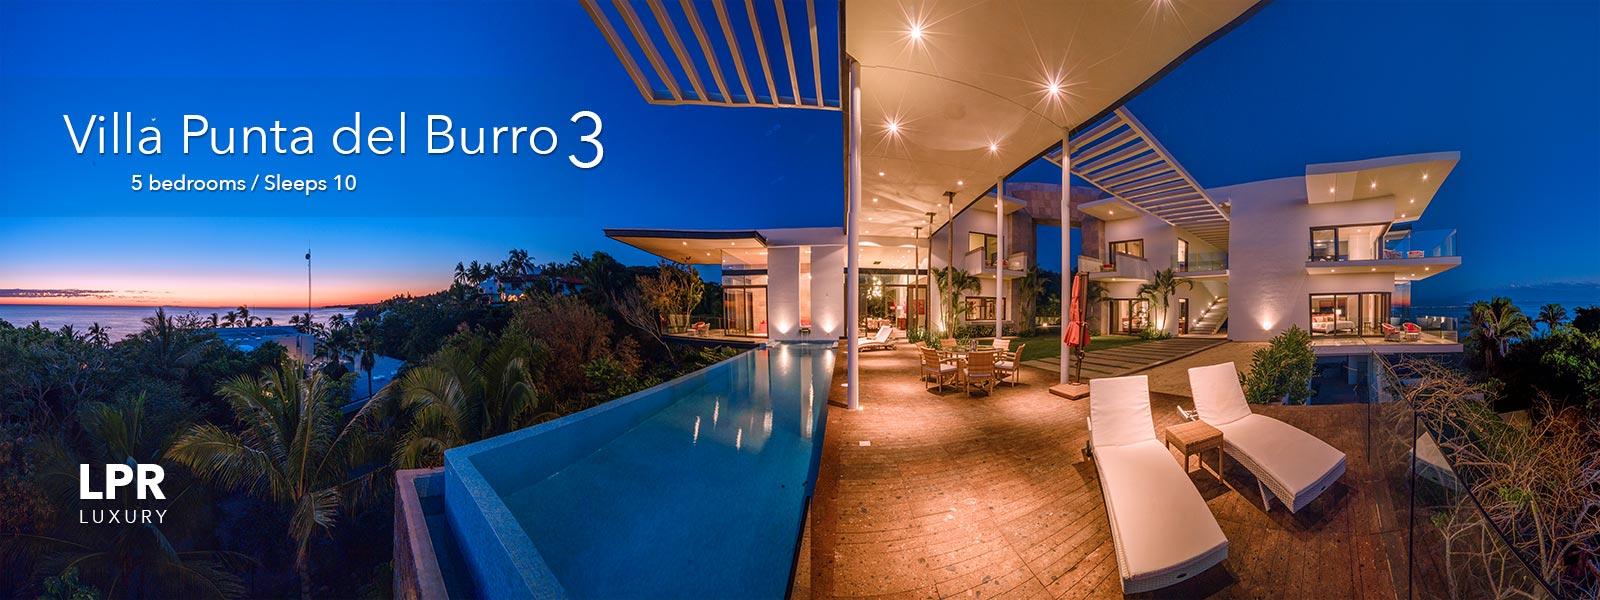 Villa Punta del Burro 3 - Punta de Mita luxury real estate - Puerto Vallarta, Mexico